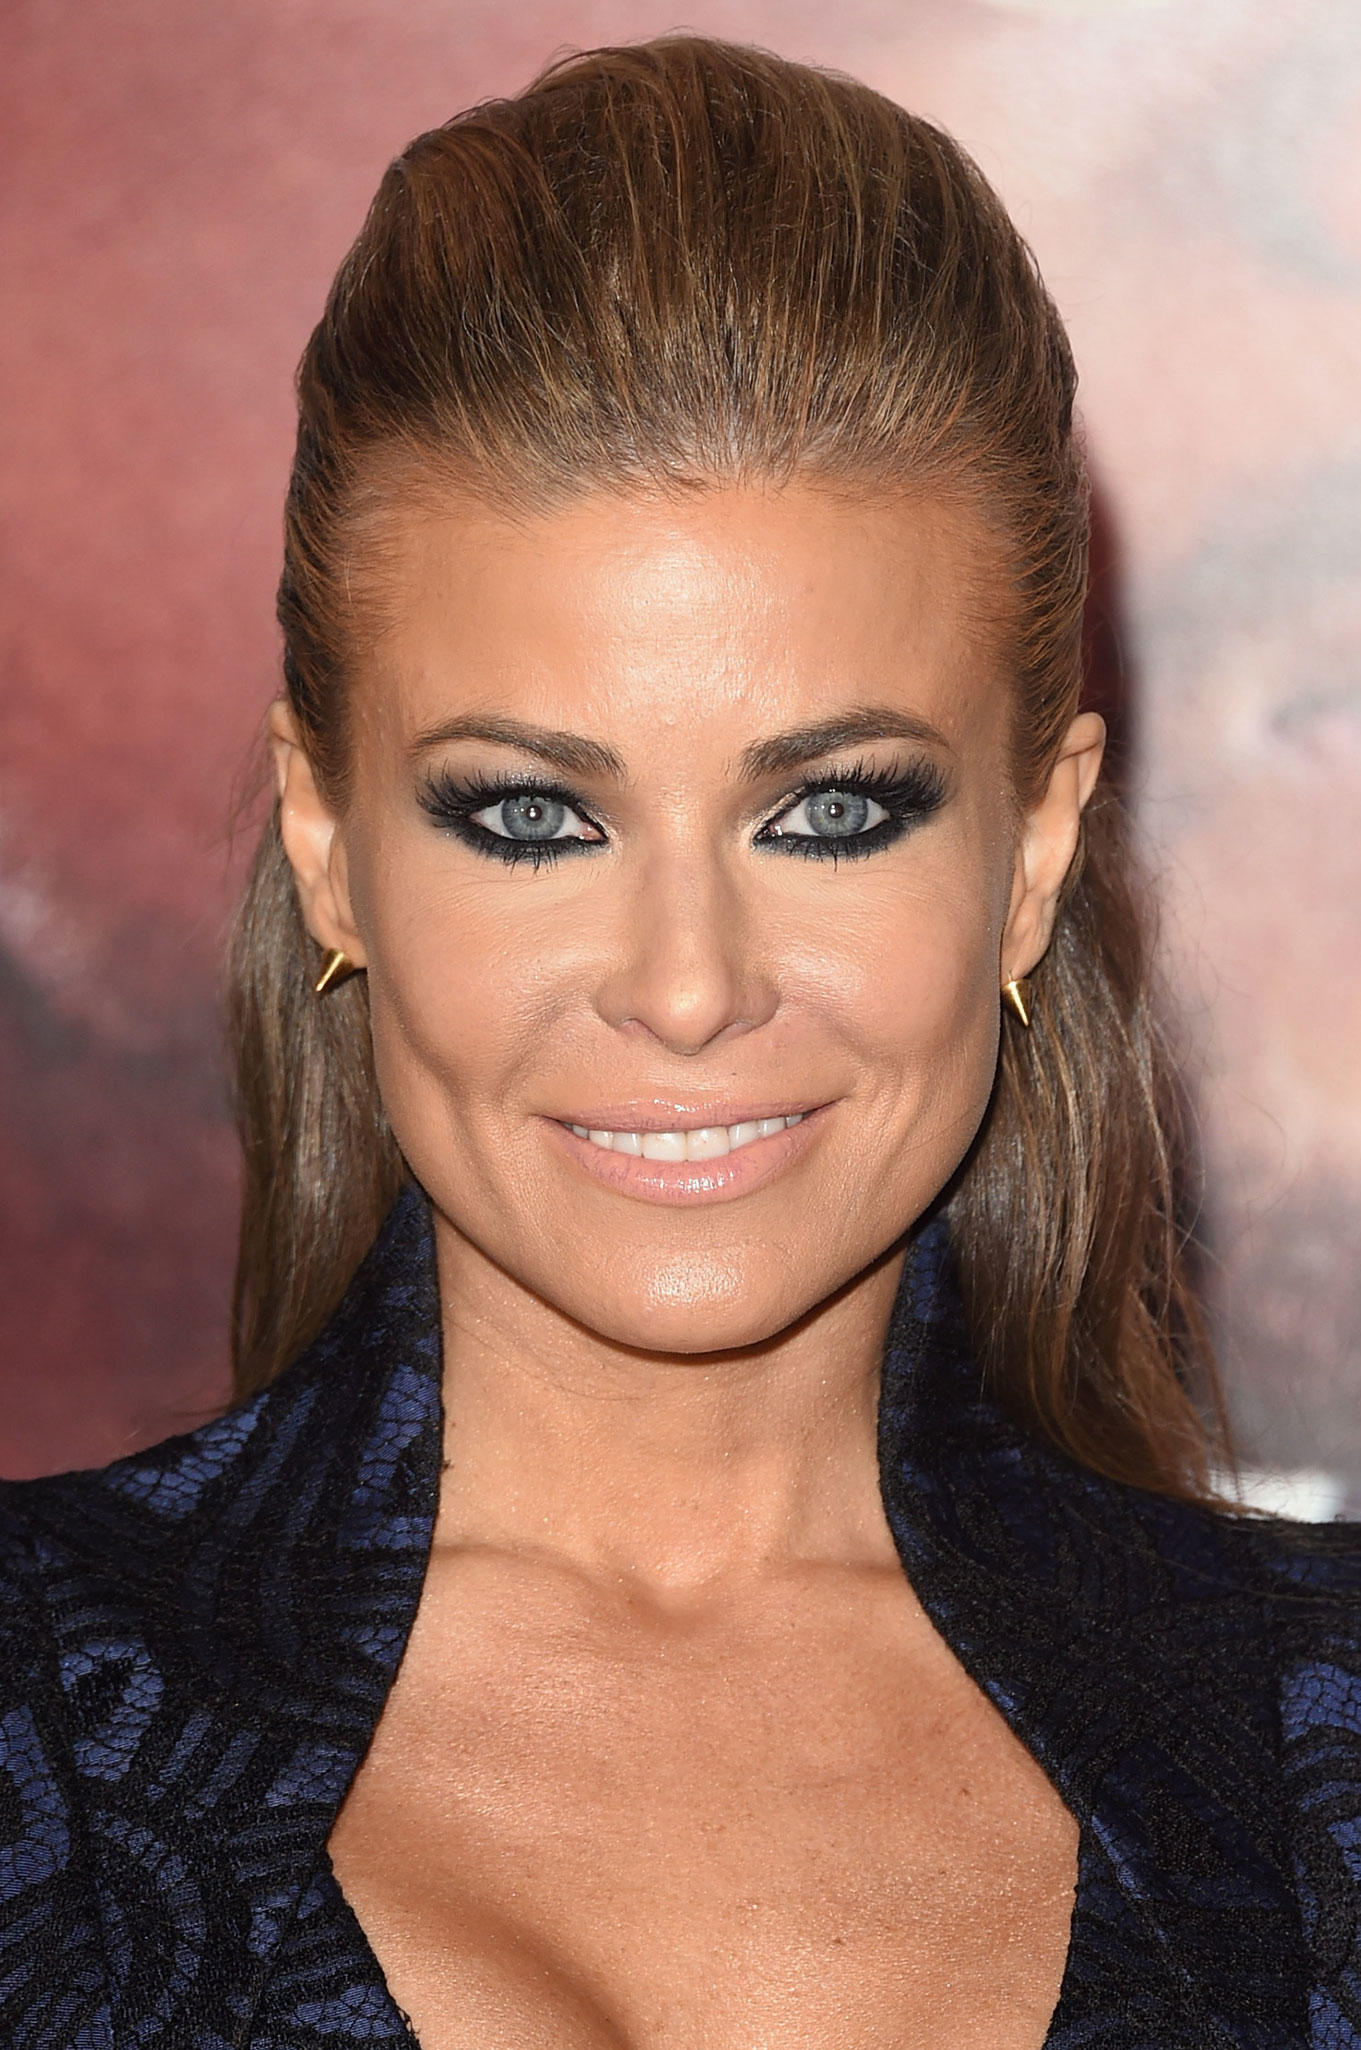 Images Carmen Electra nude photos 2019